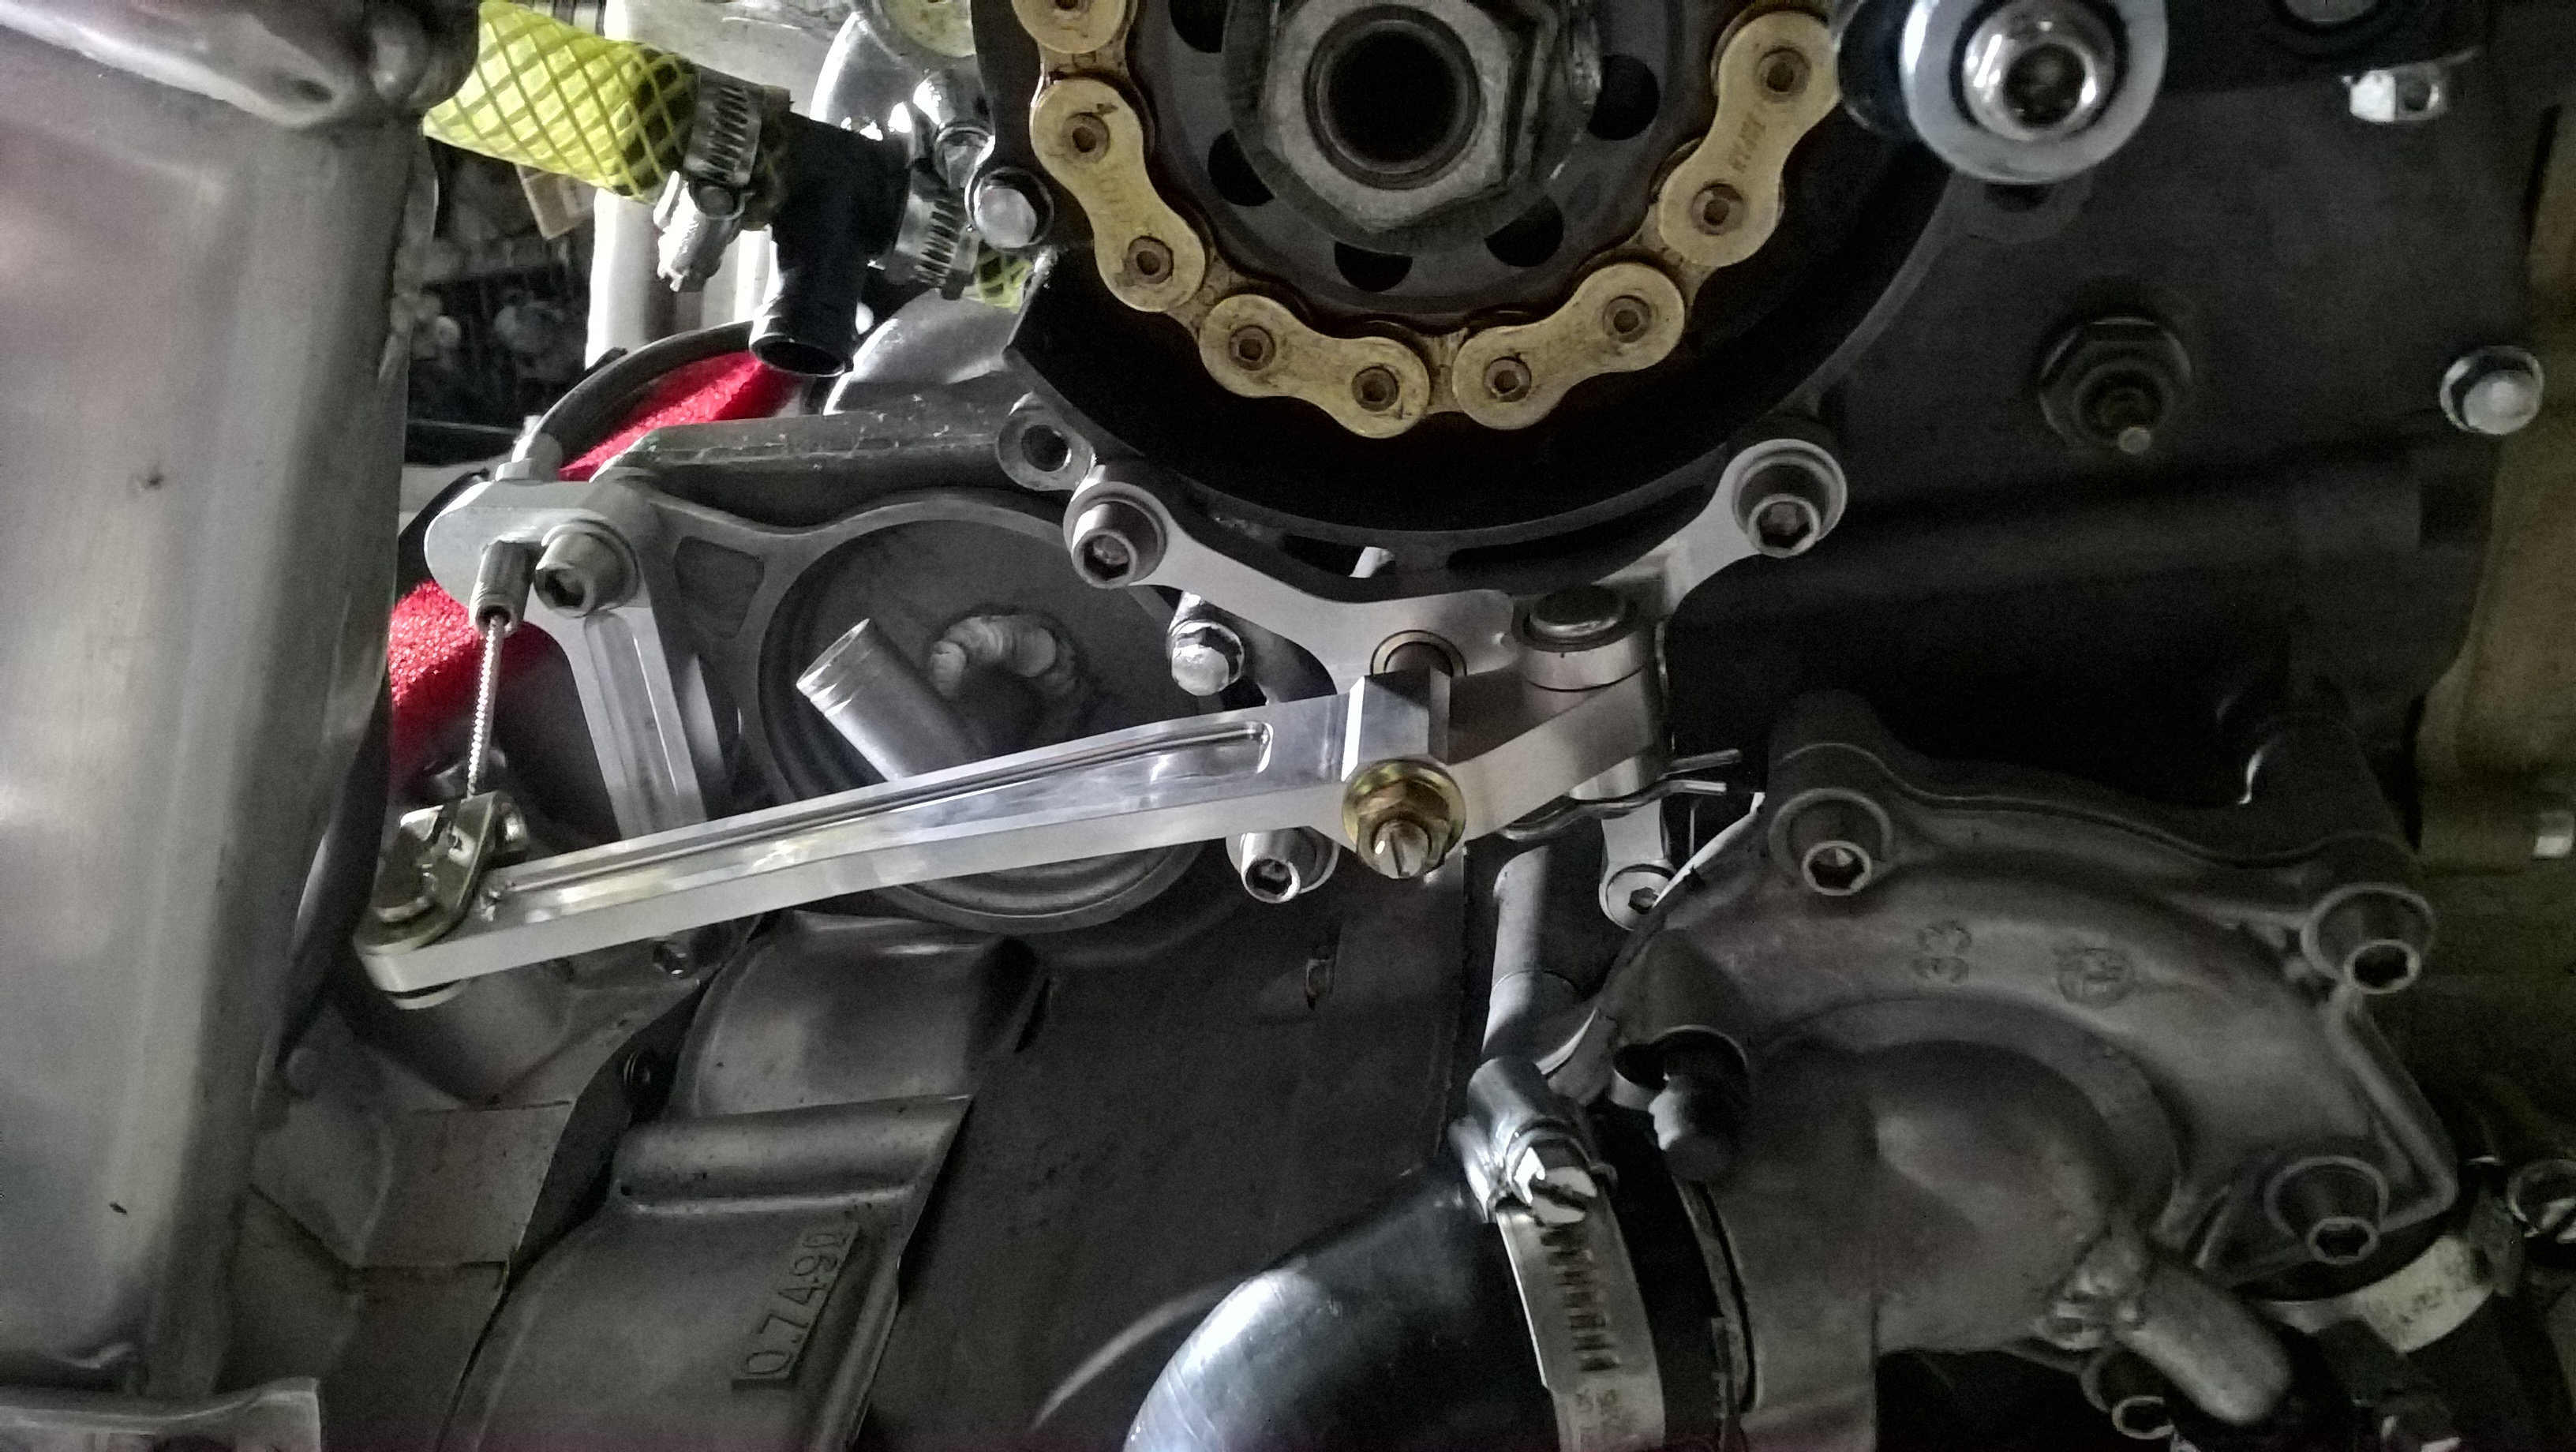 Cable Clutch ZXR750 Bike Pic 2